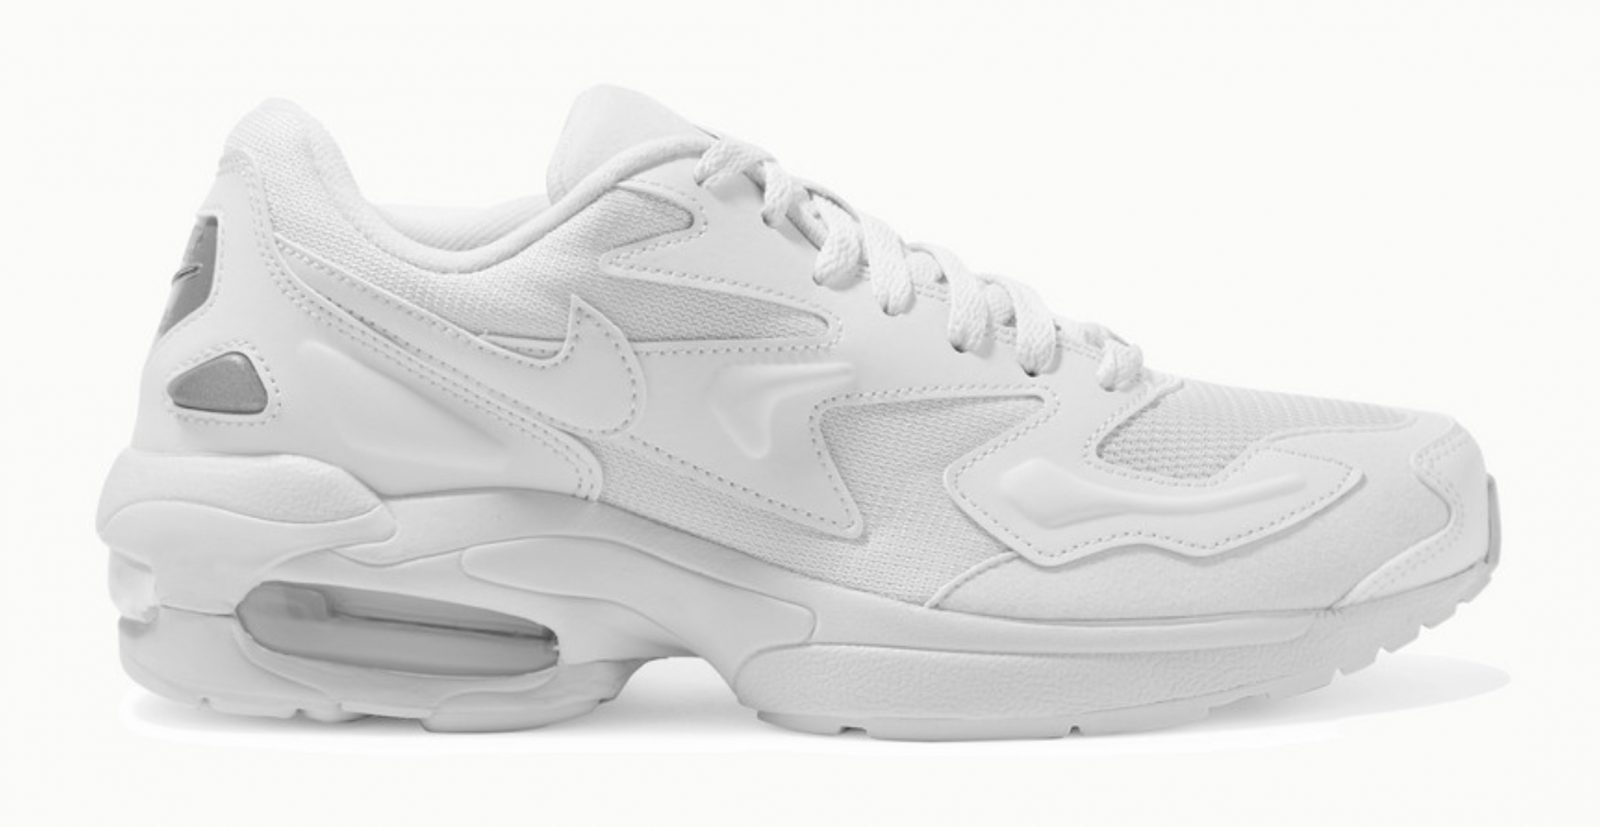 Nike Air Max 2 Light faux leather and mesh sneakers